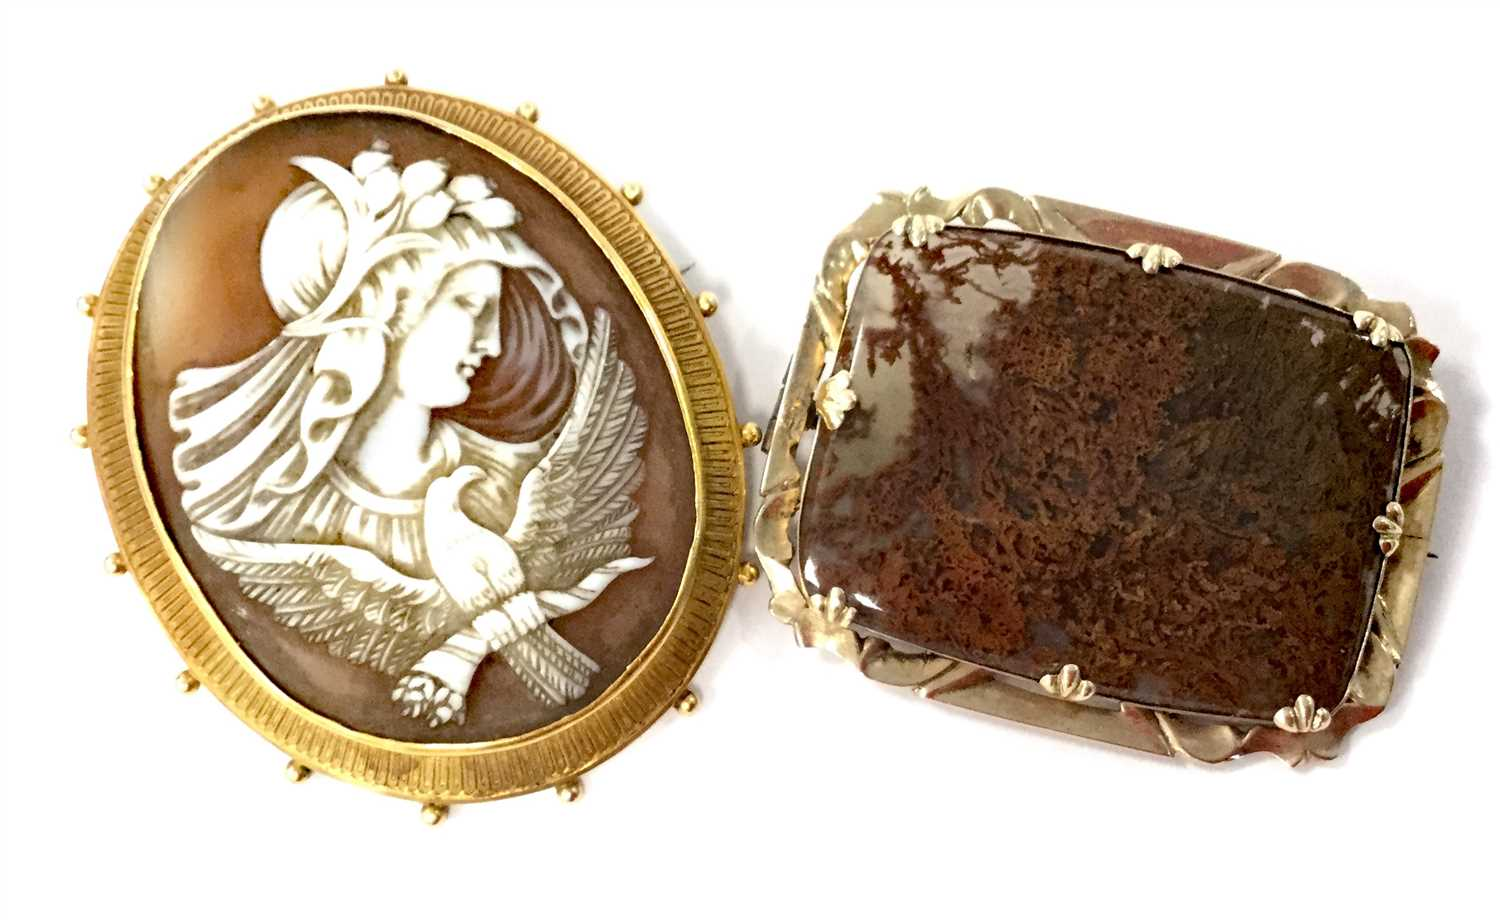 Lot 3 - A VICTORIAN AGATE BROOCH AND A VICTORIAN CAMEO BROOCH